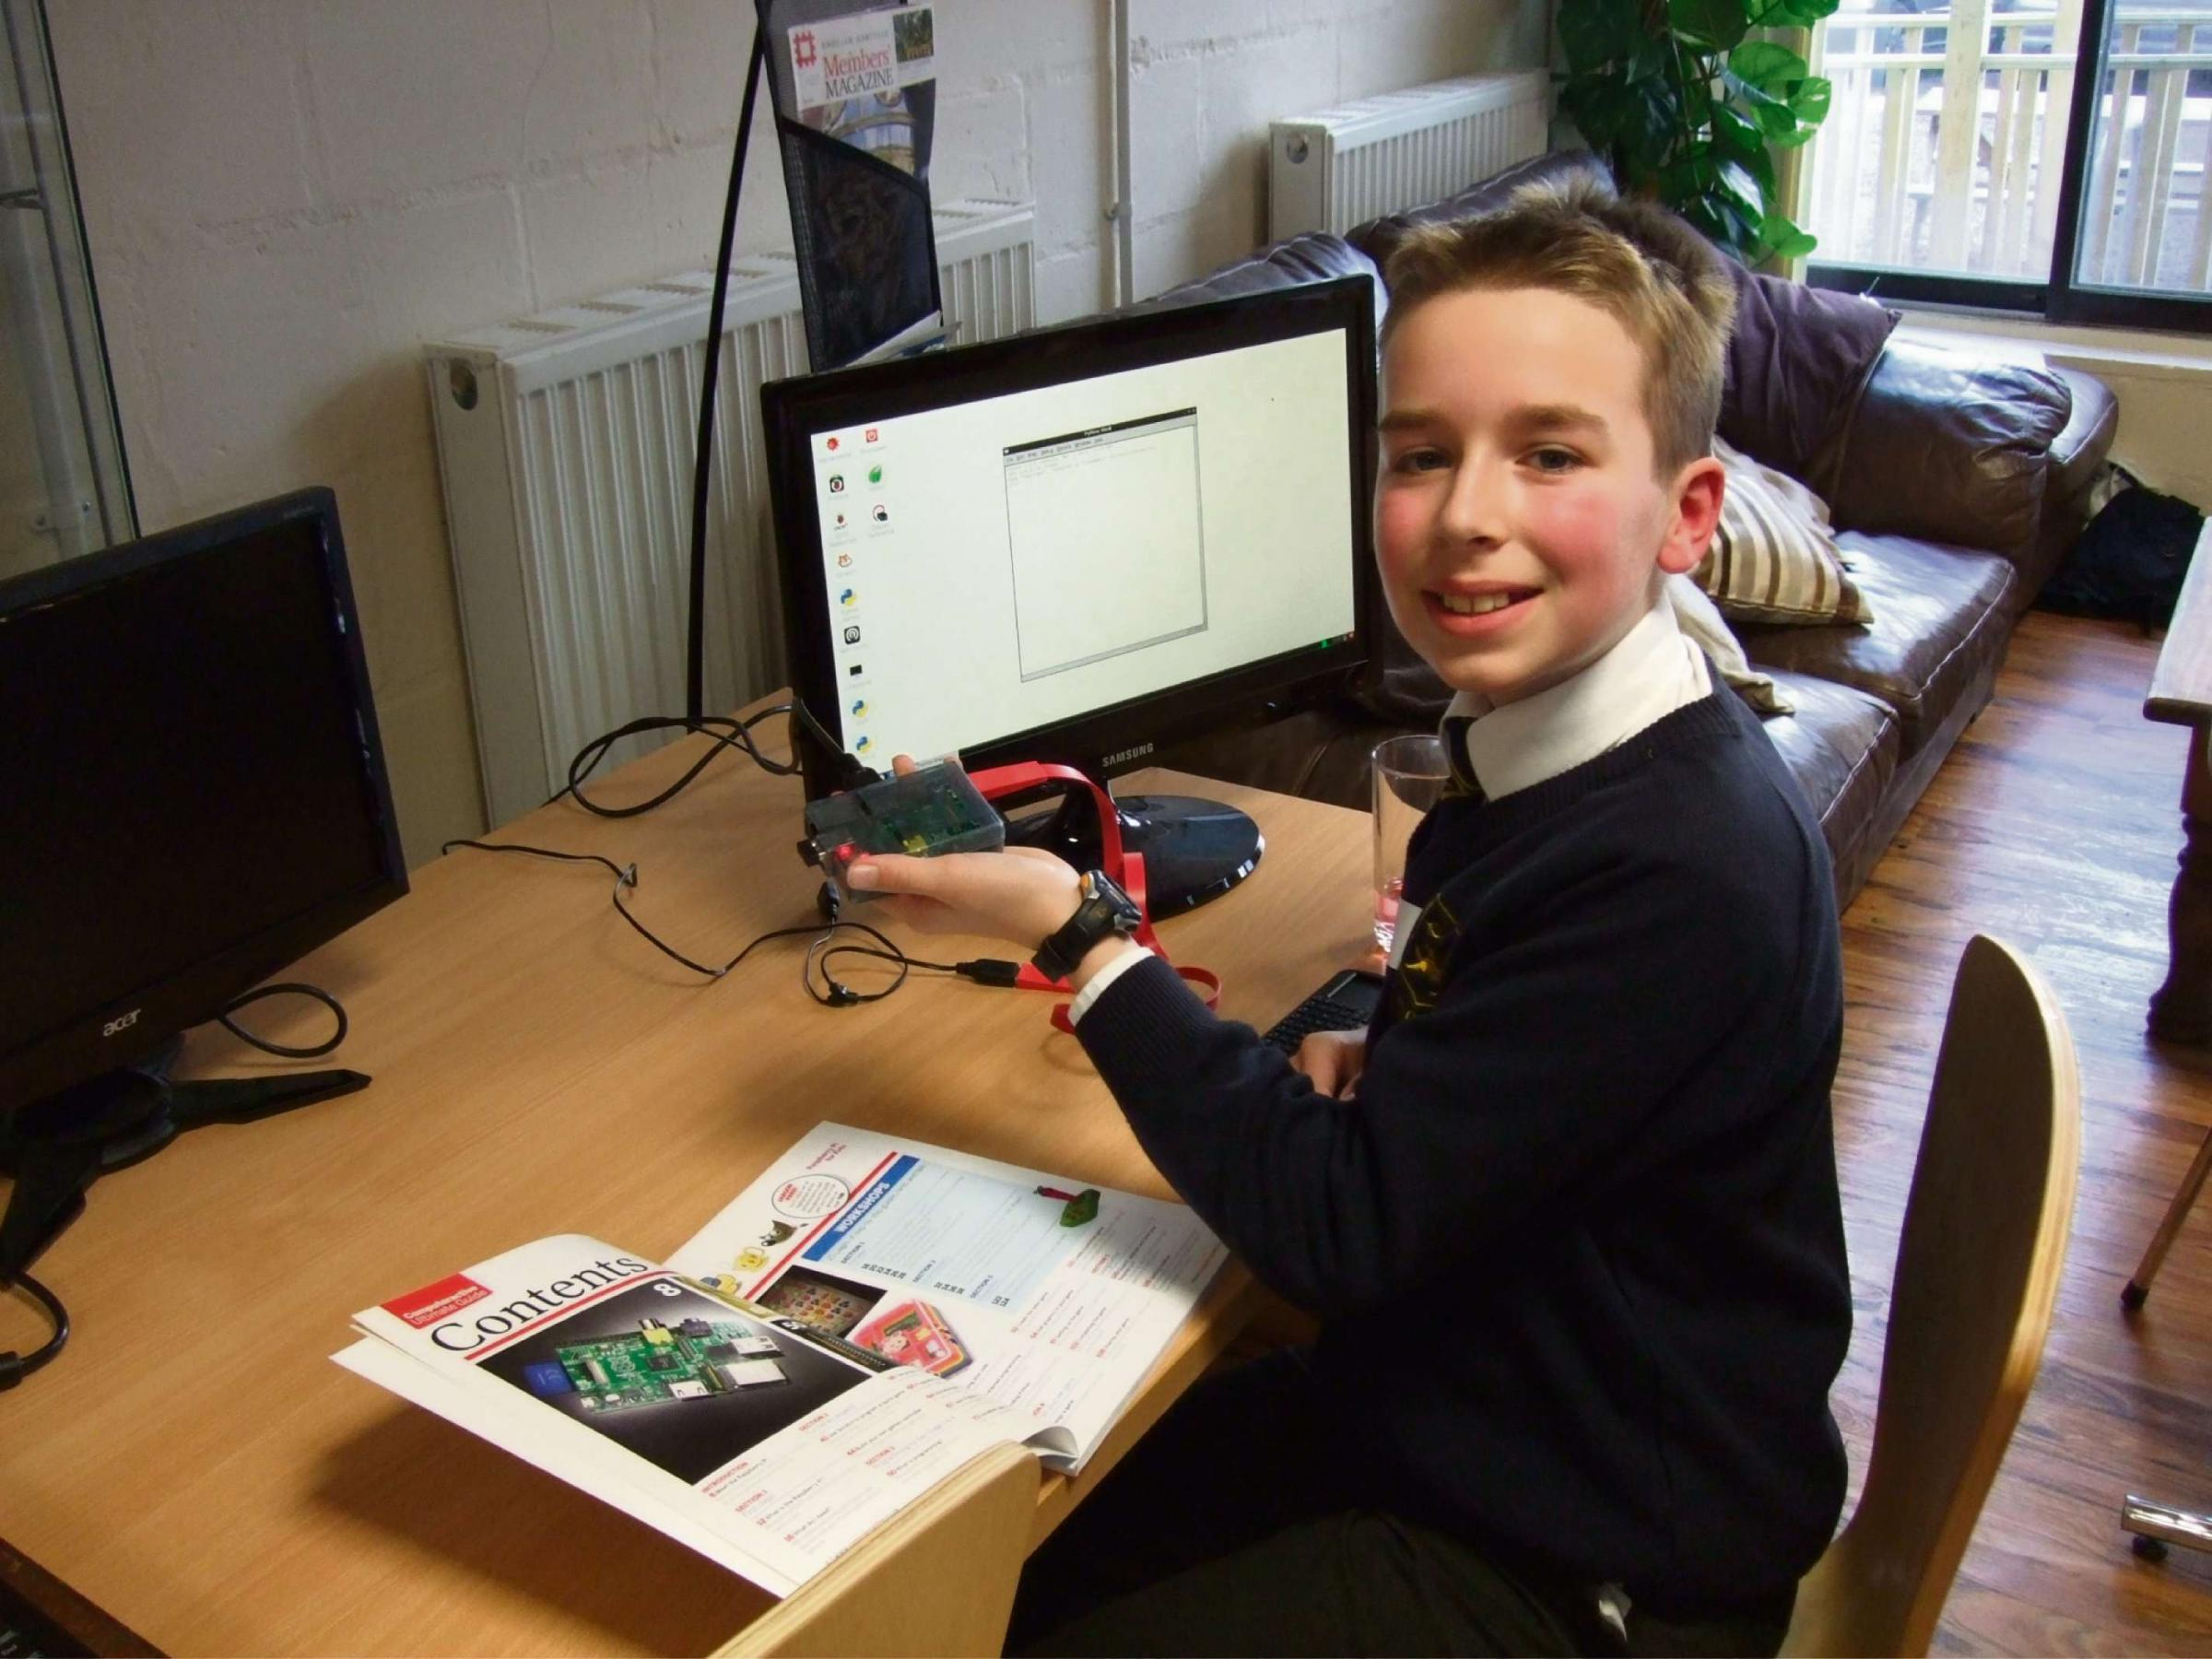 New class attracts Malvern's young computer whizzkids